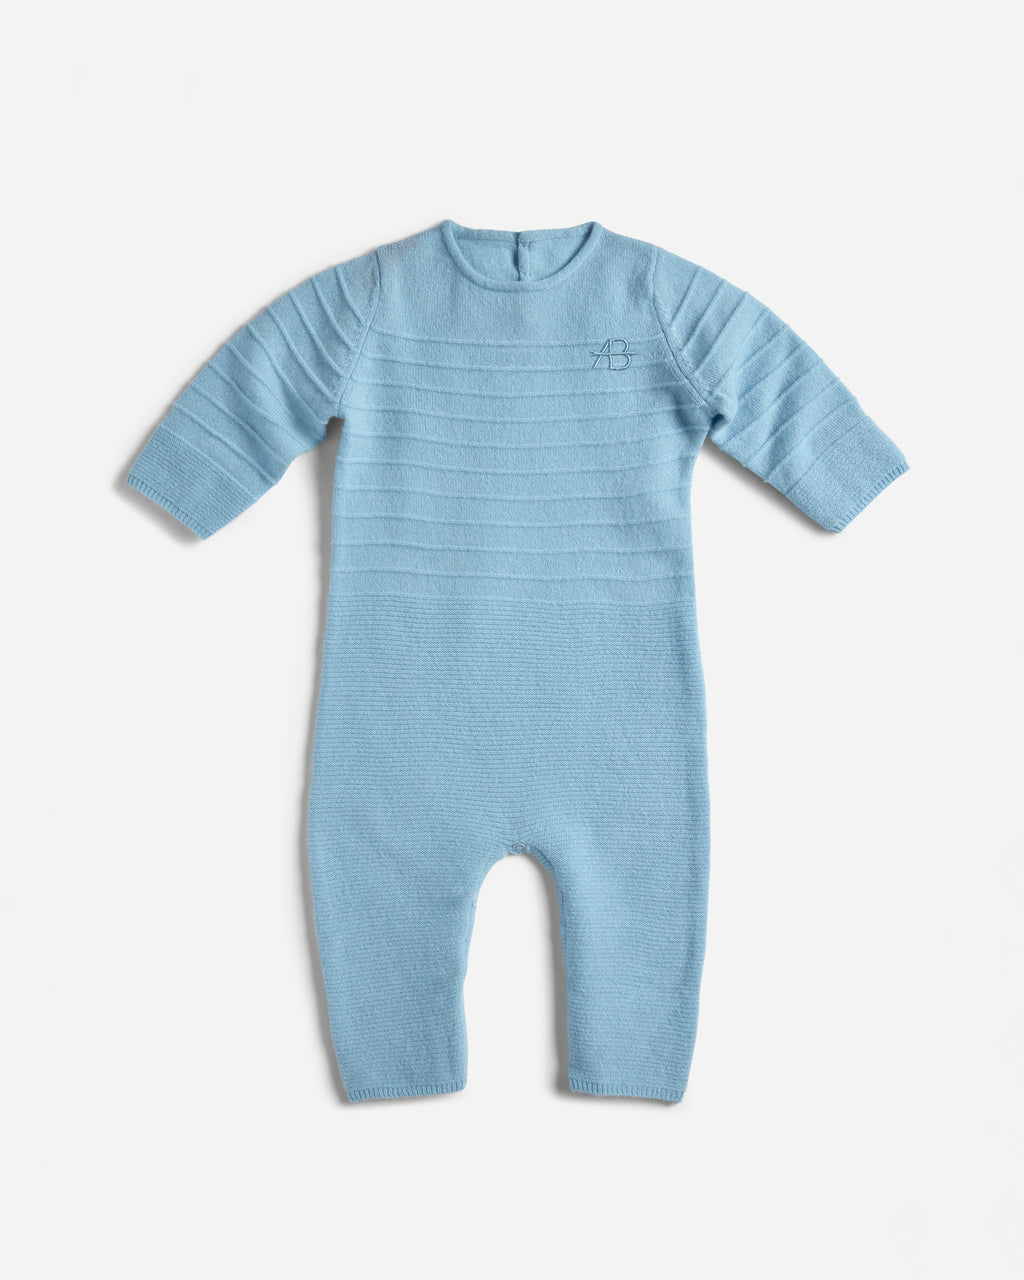 Archer's-Bow-Kids-Links-Monogram-Onesie-Blue